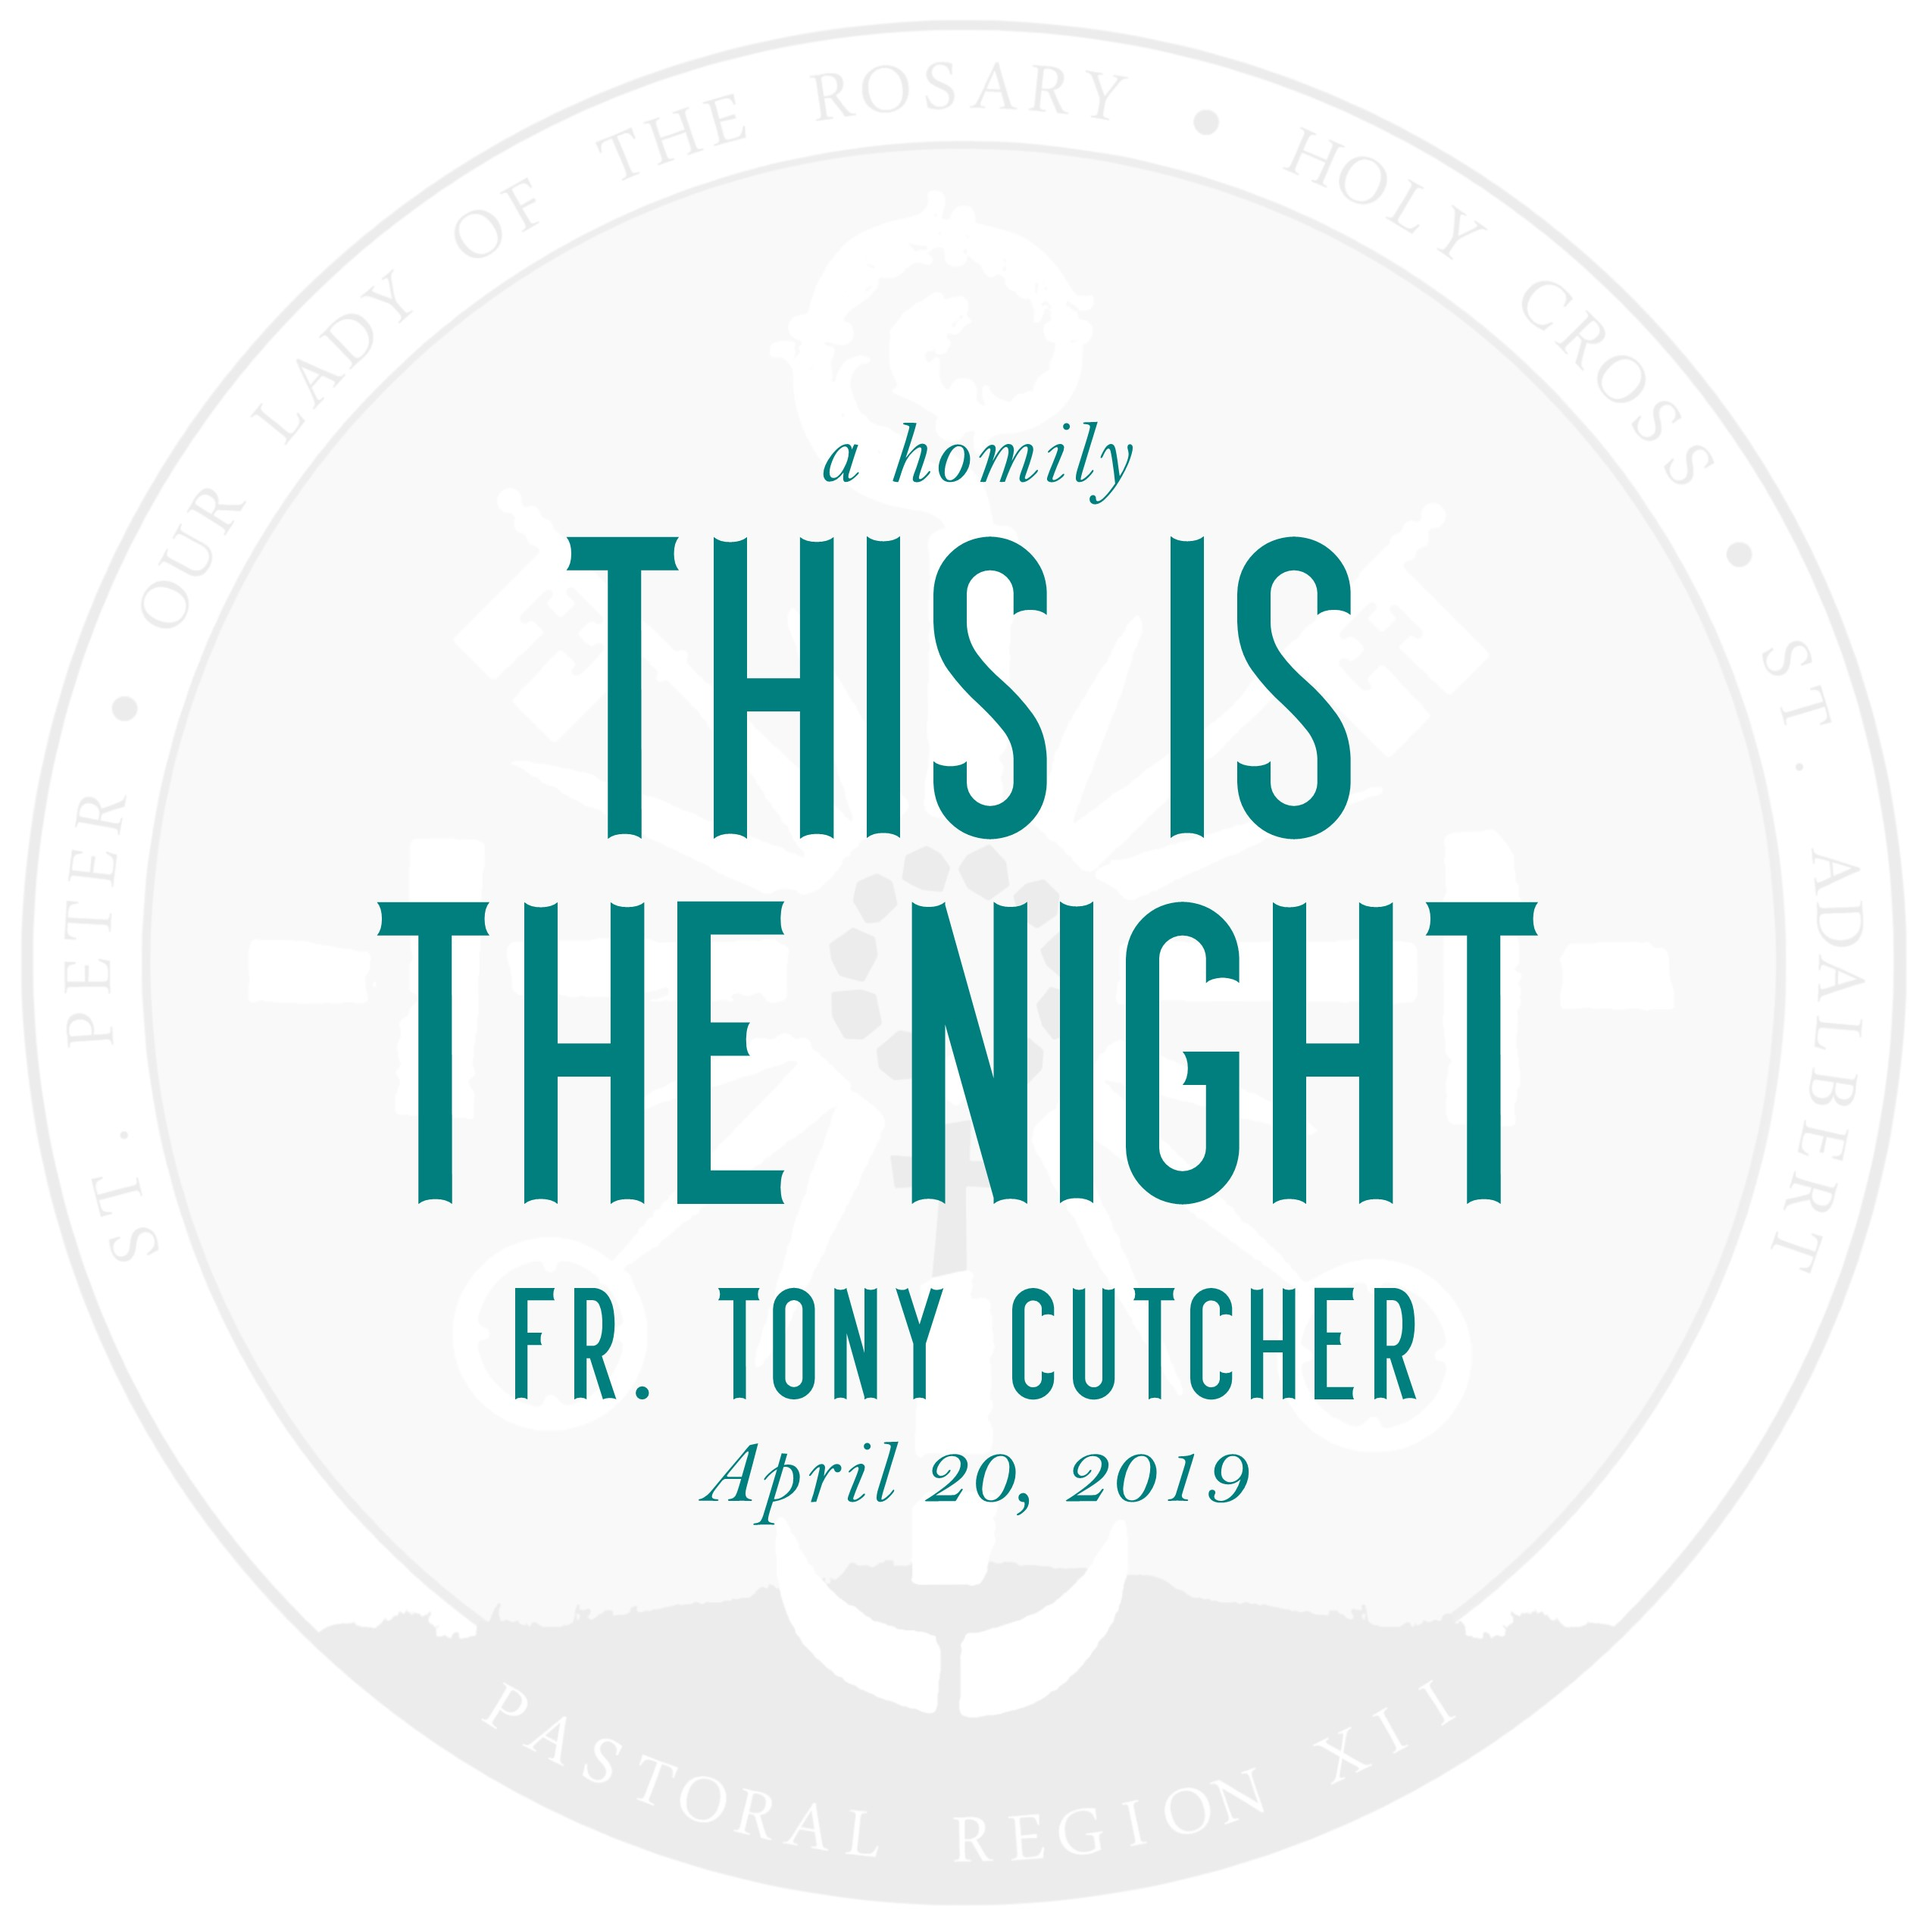 Homily: This Is the Night   by Fr. Tony Cutcher   April 20, 2019